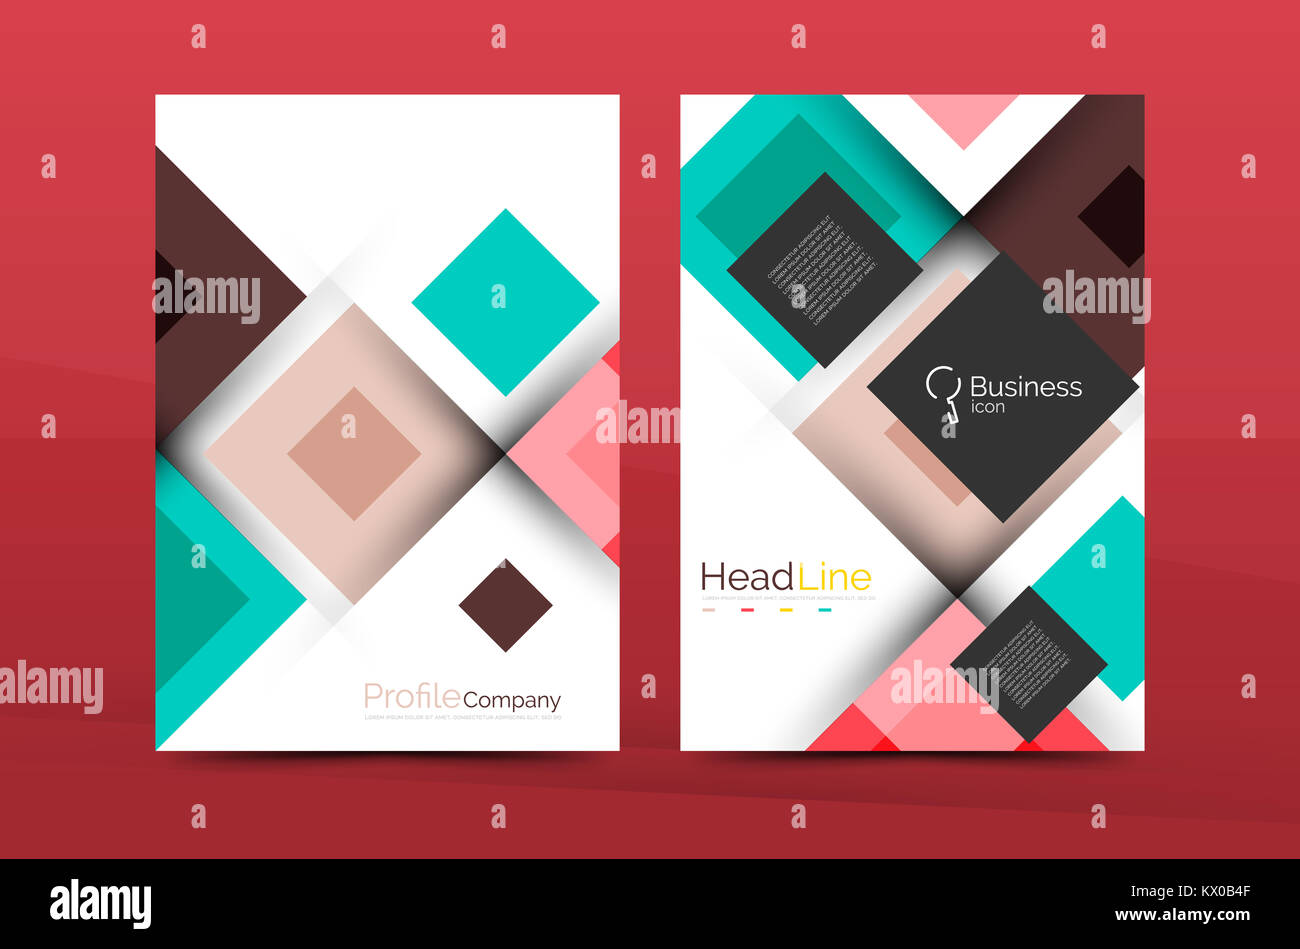 set of front and back a4 size pages business annual report design templates geometric square shapes backgrounds illustration